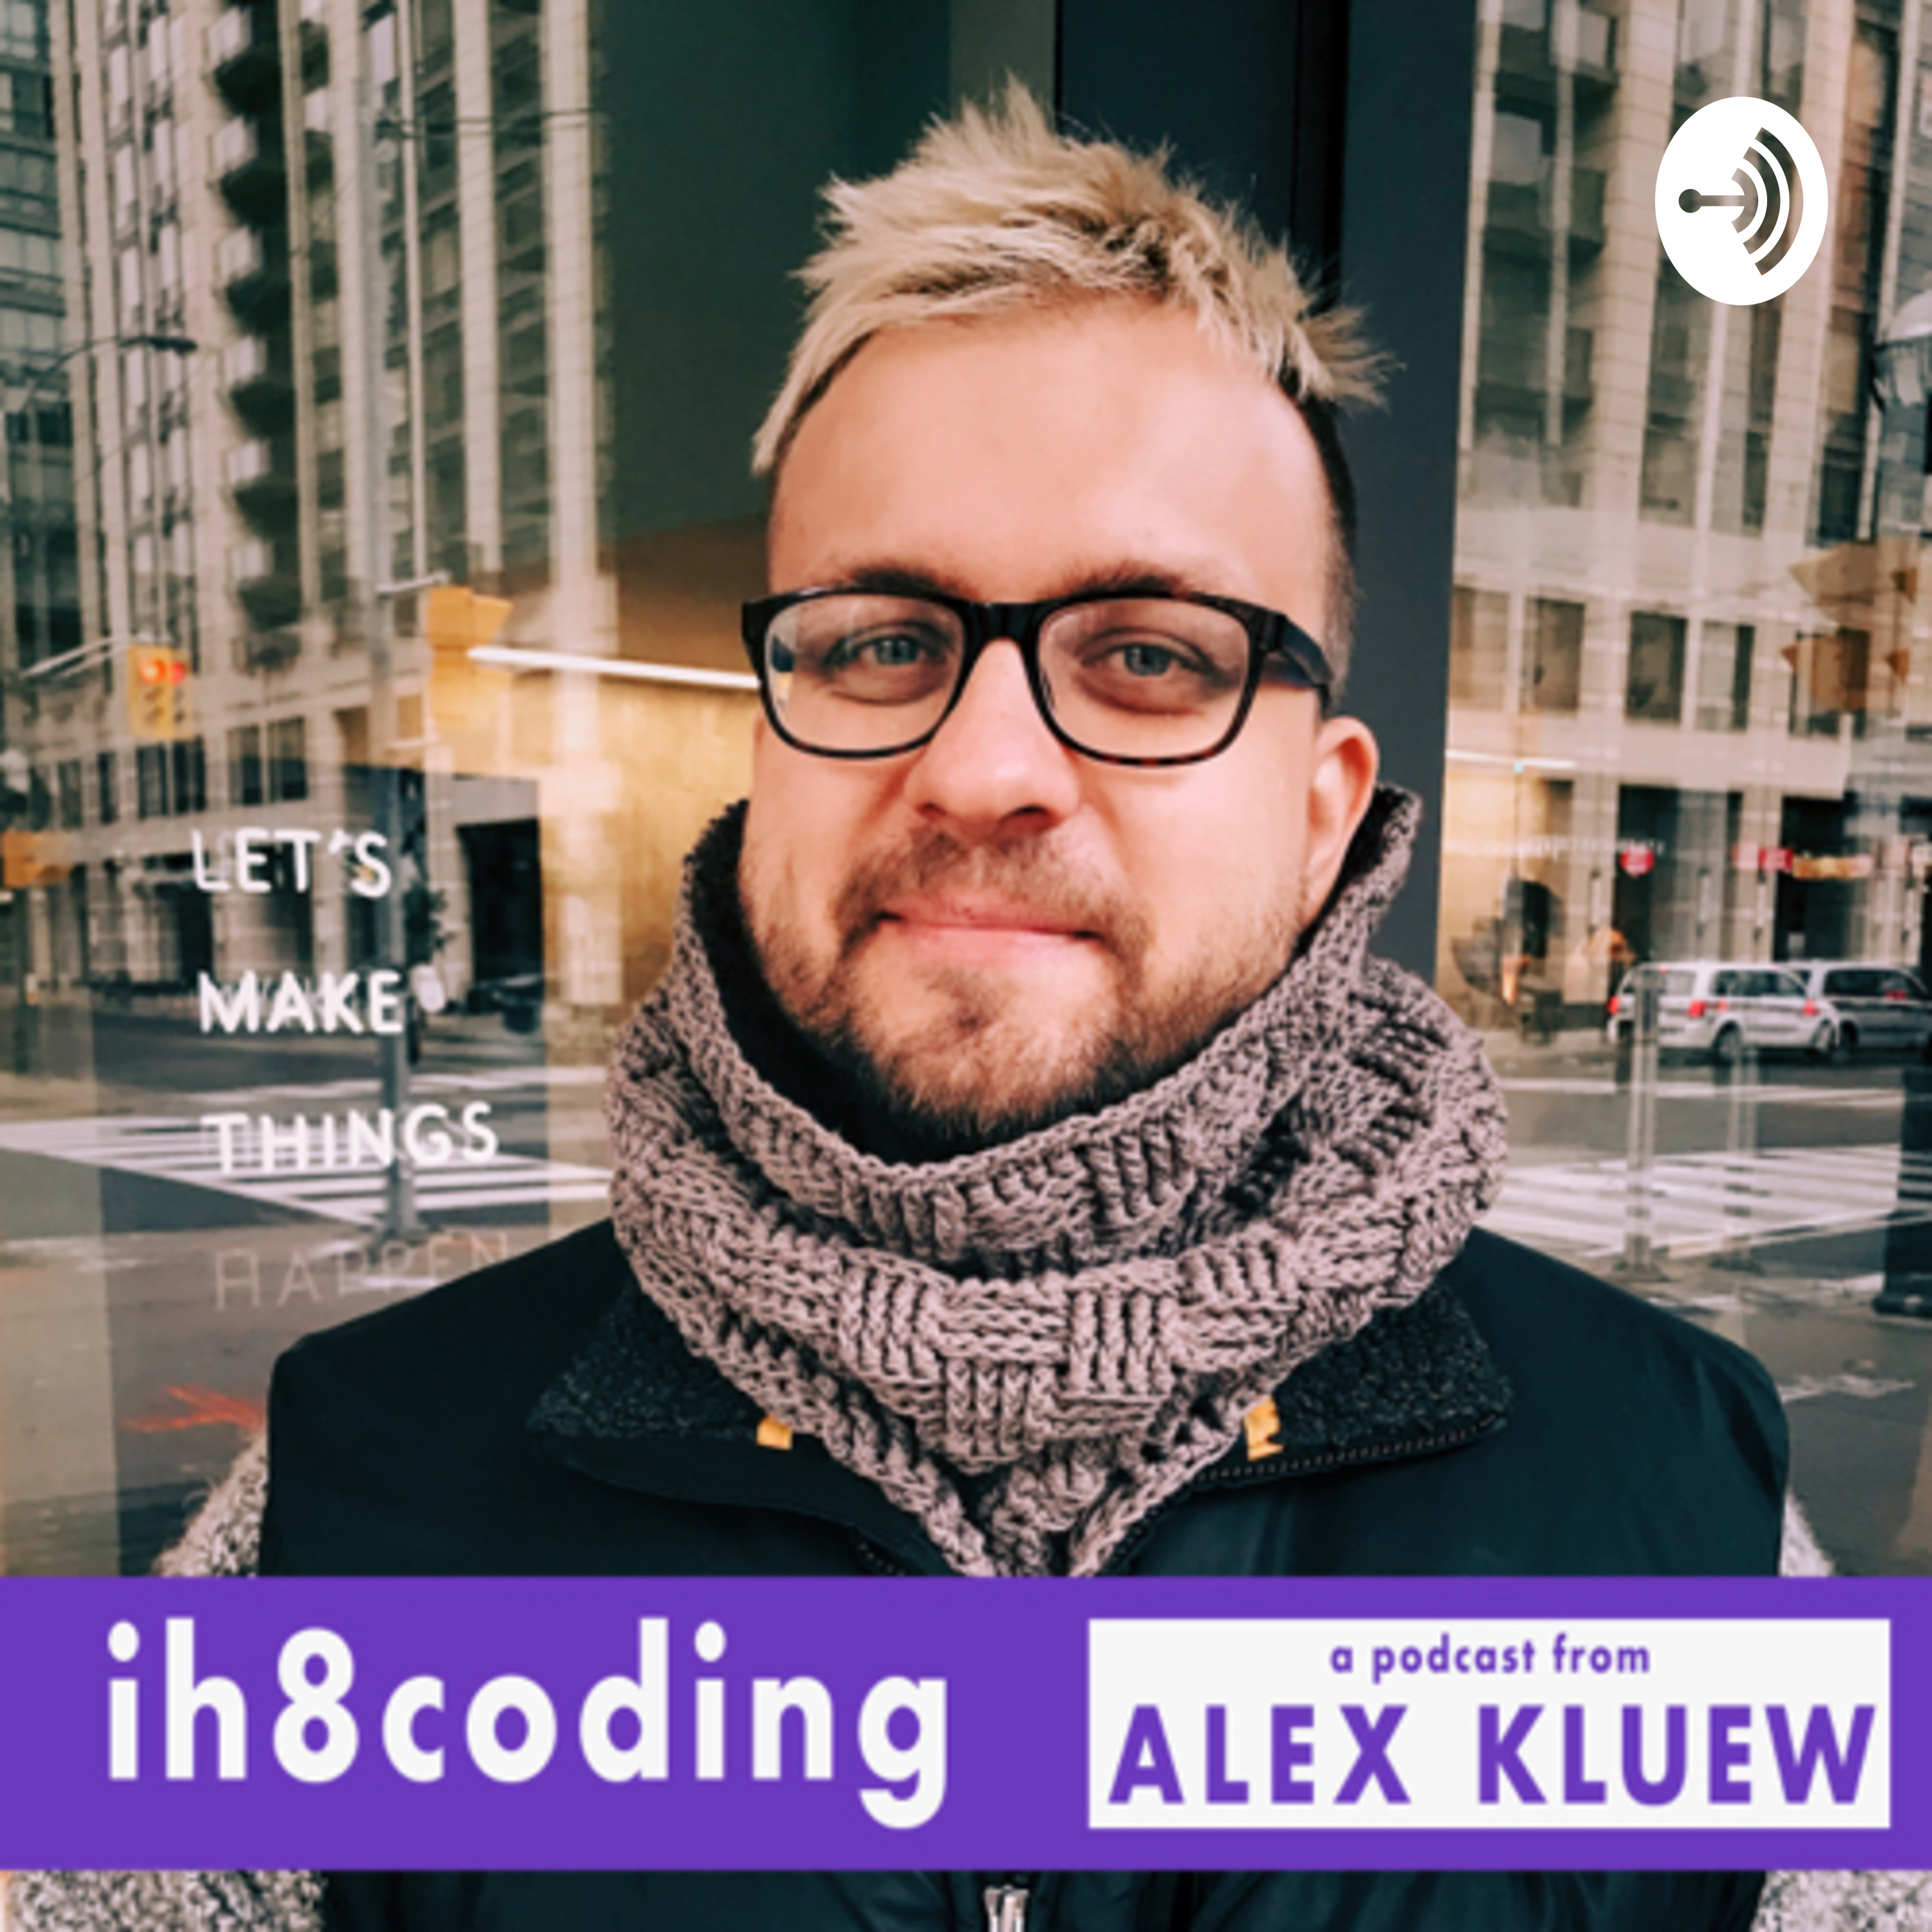 ih8coding : a podcast from Alex Kluew